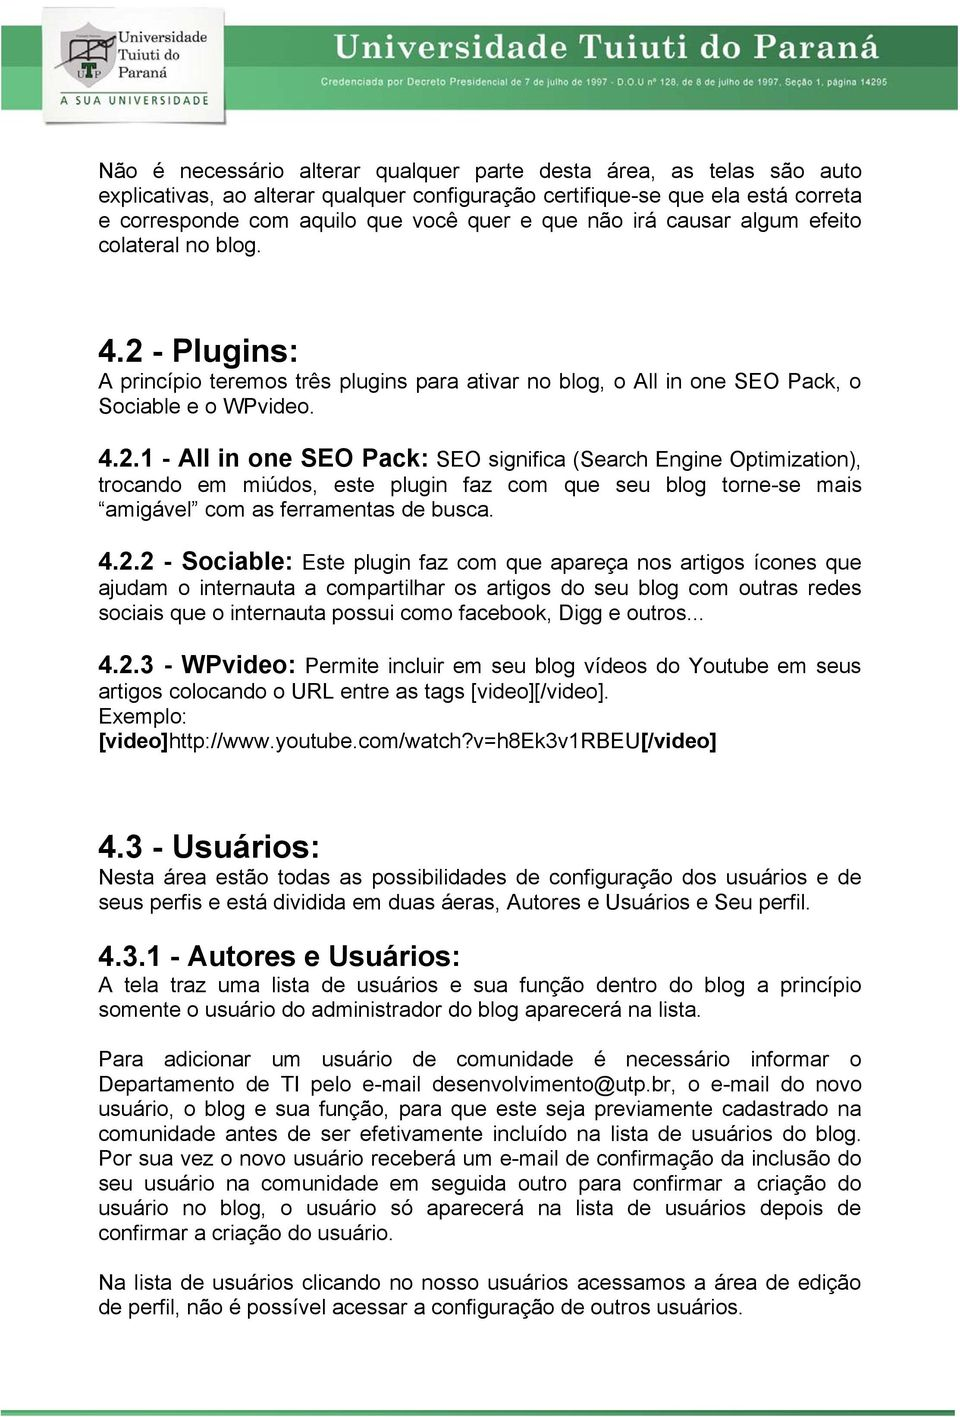 - Plugins: A princípio teremos três plugins para ativar no blog, o All in one SEO Pack, o Sociable e o WPvideo. 4.2.